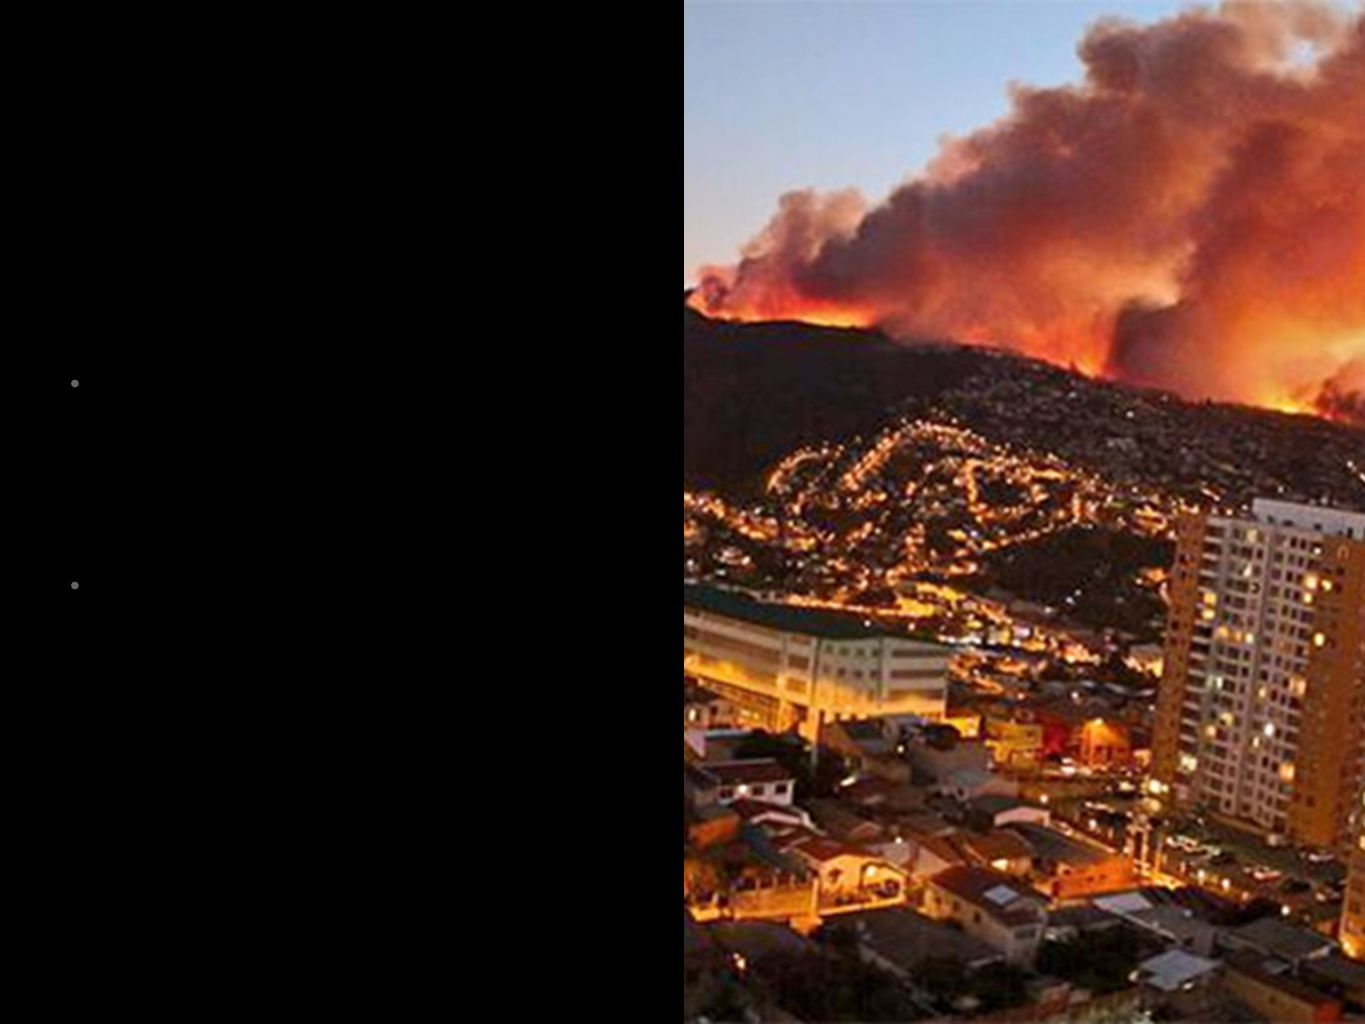 Valparaiso, Chile The Great Fire of Valparaíso started on 12 April 2014 at 16:40 local time, in the hills of the city of Valparaíso, Chile.